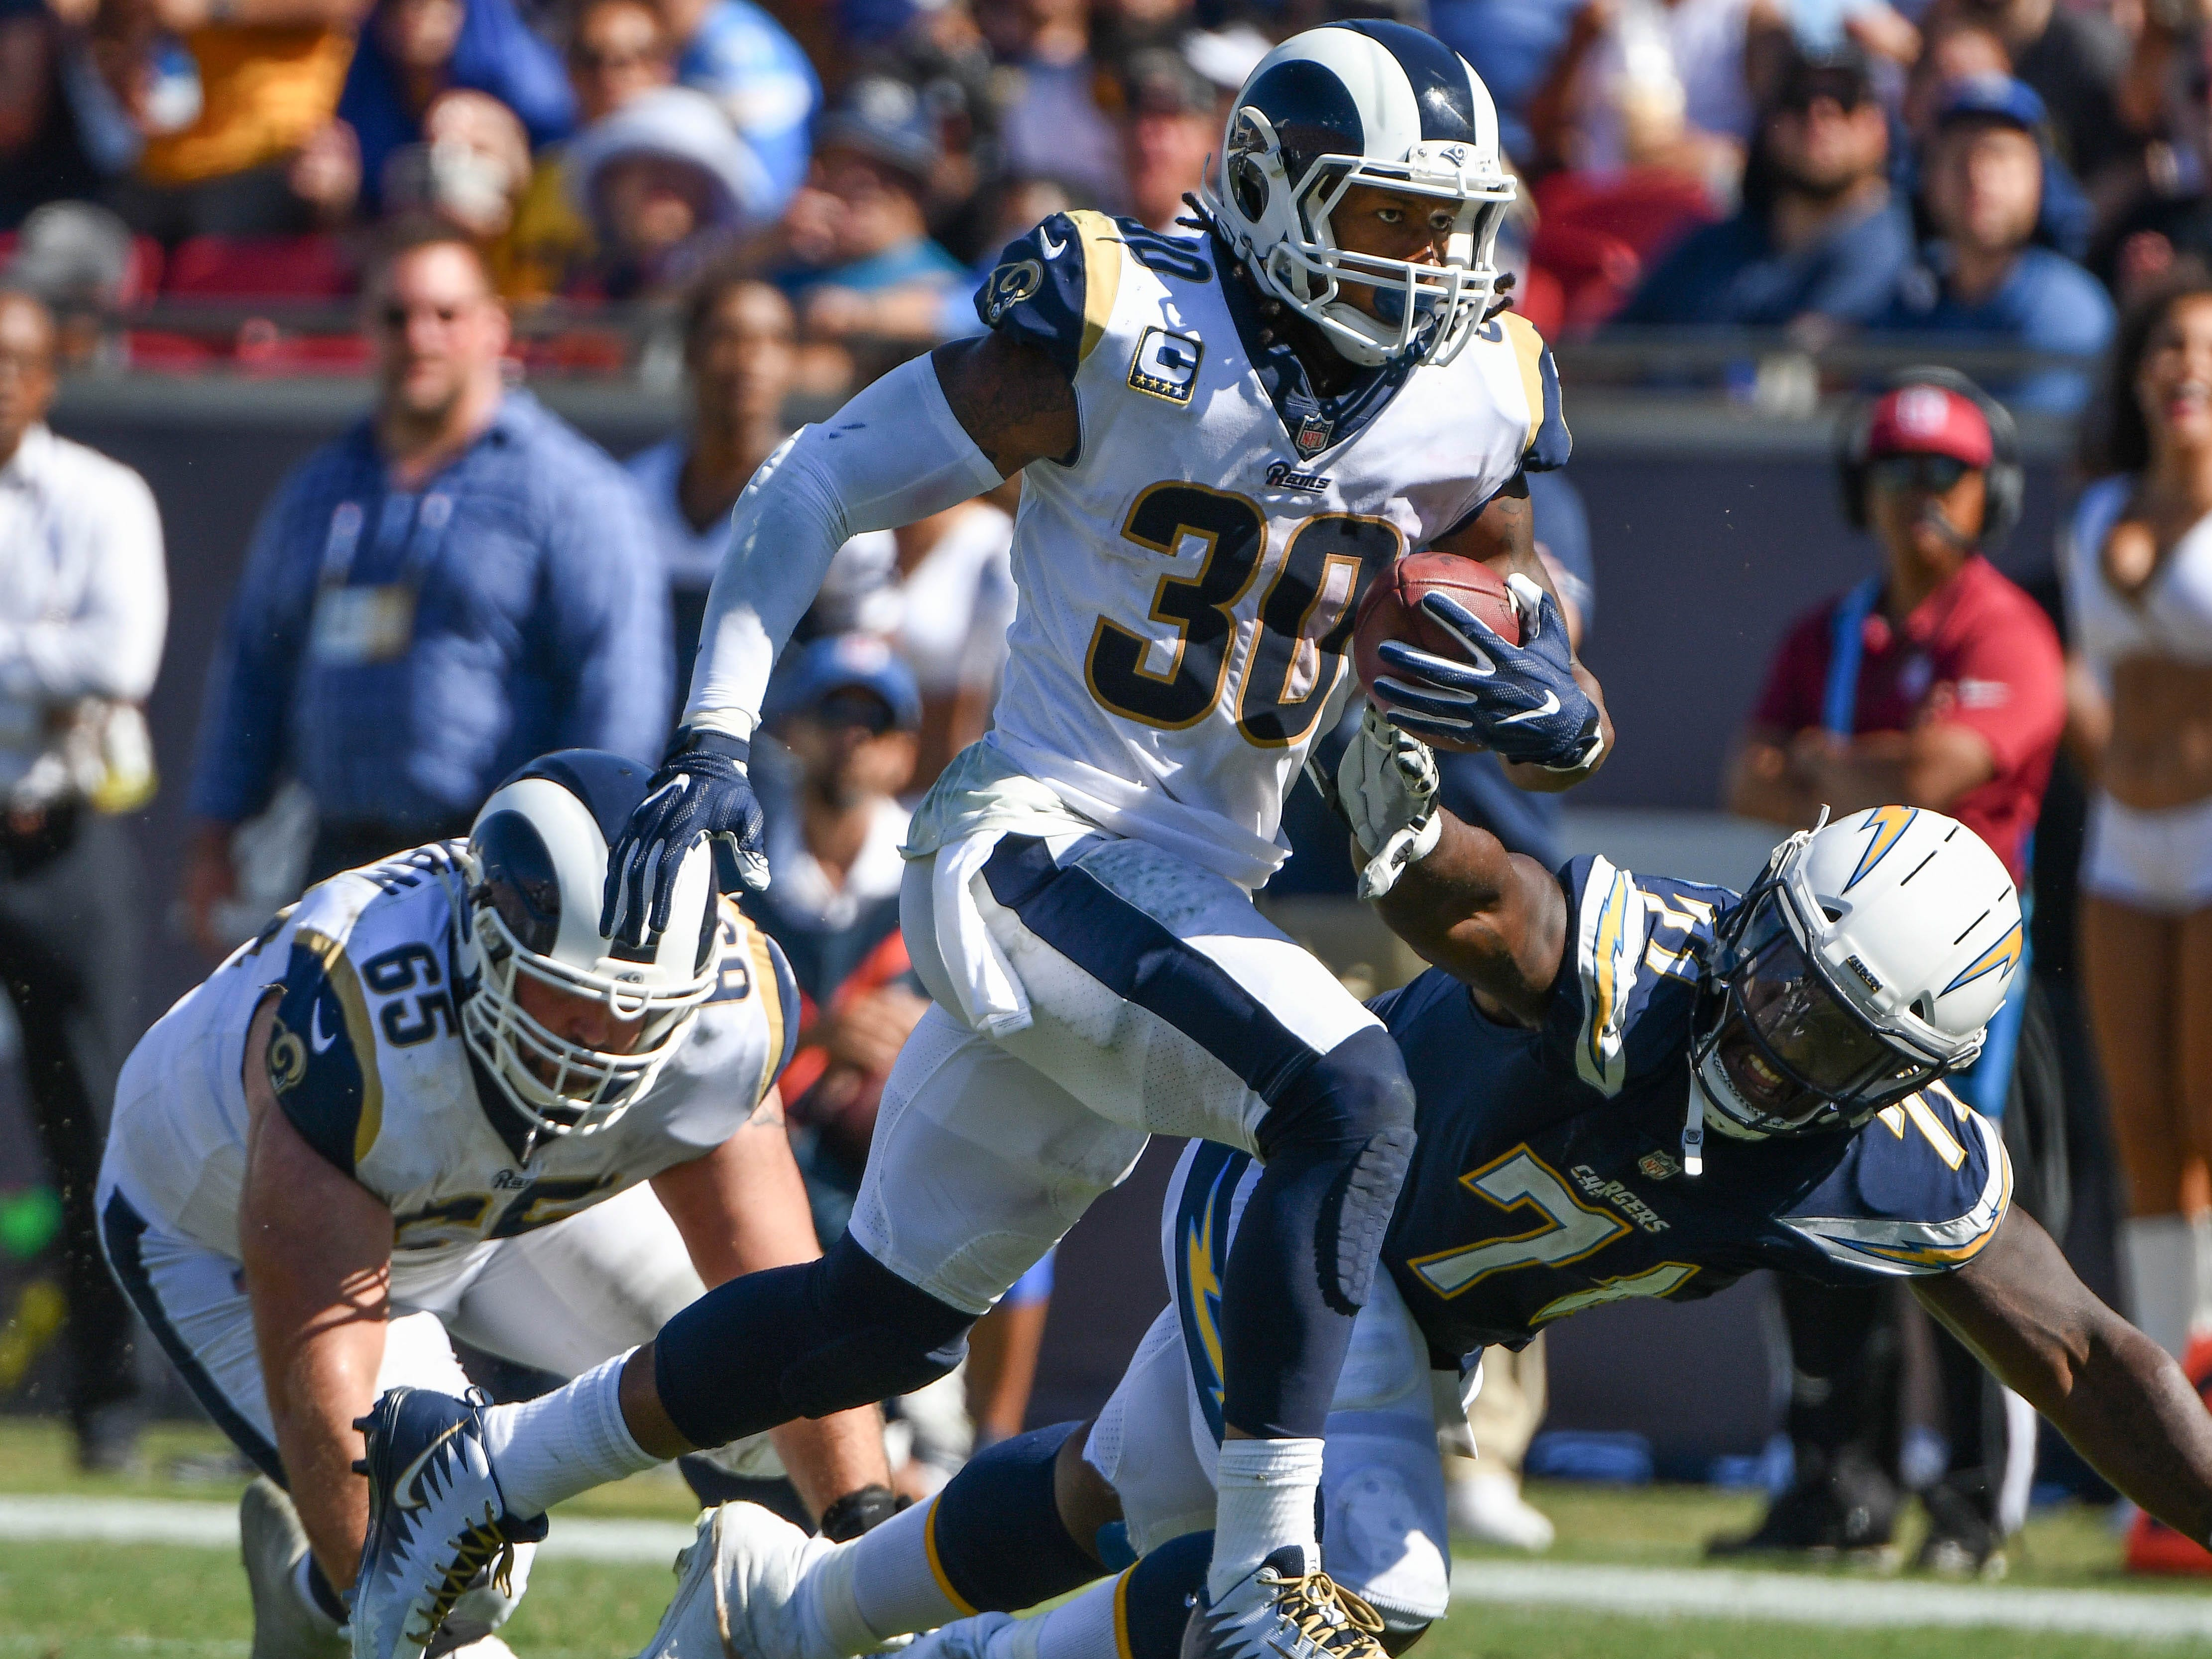 1. Rams (2): They're on pace to outscore opponents by 352 points (22 per game), though that could change with Peters and Talib on pace to miss a few games.